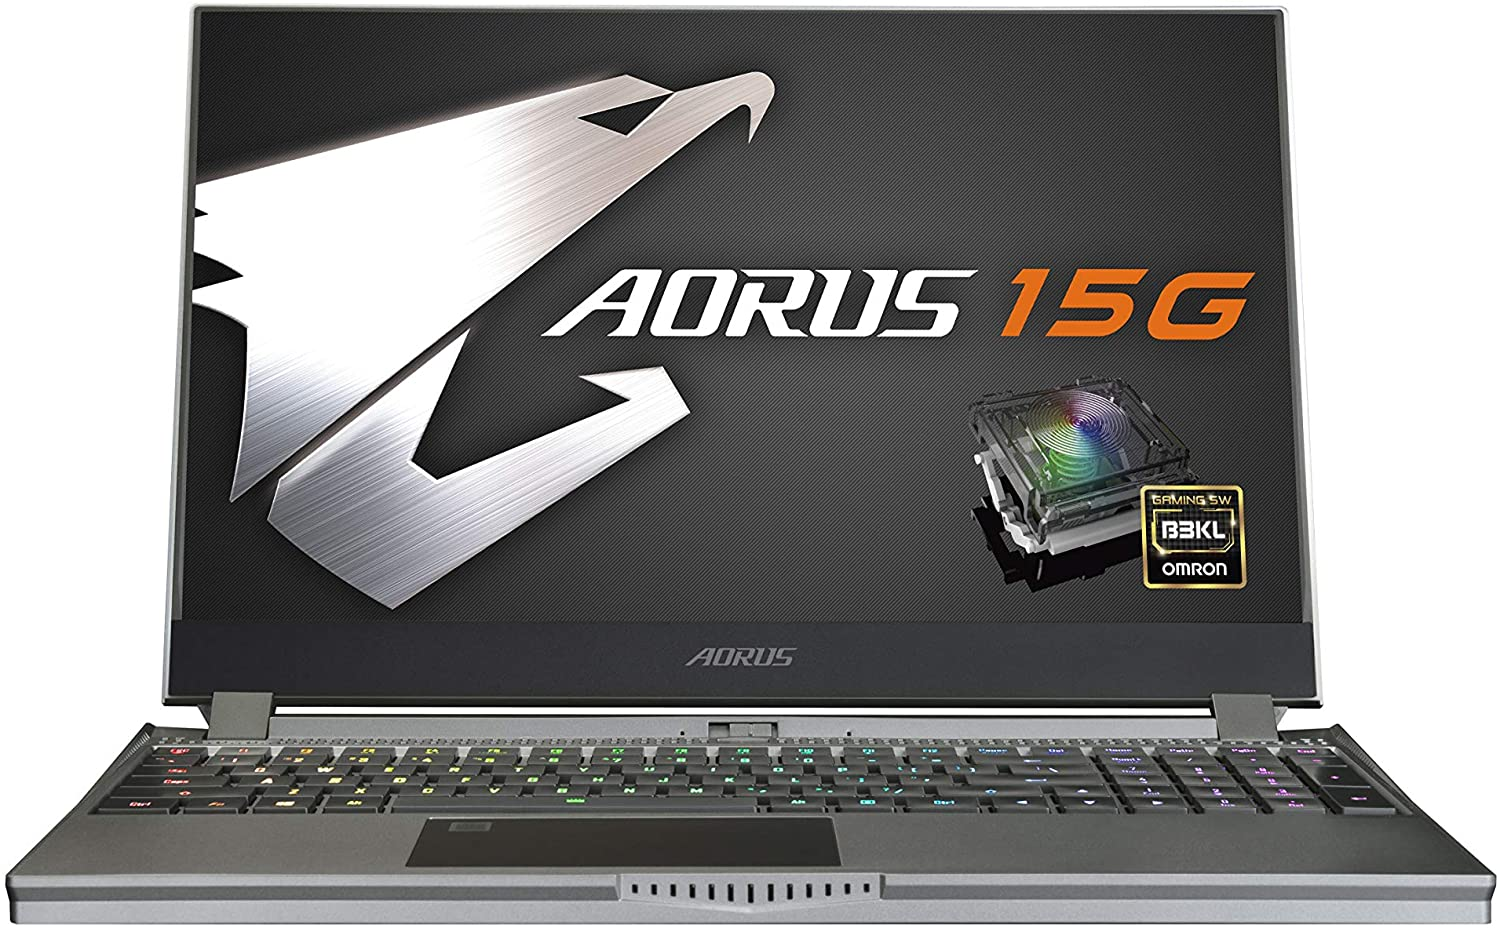 [2020] AORUS 15G (XB) Performance Gaming Laptop, 15.6-inch FHD 240Hz IPS, GeForce RTX 2070 Super Max-Q, 10th Gen Intel i7-10875H, 16GB DDR4, 512GB NVMe SSD